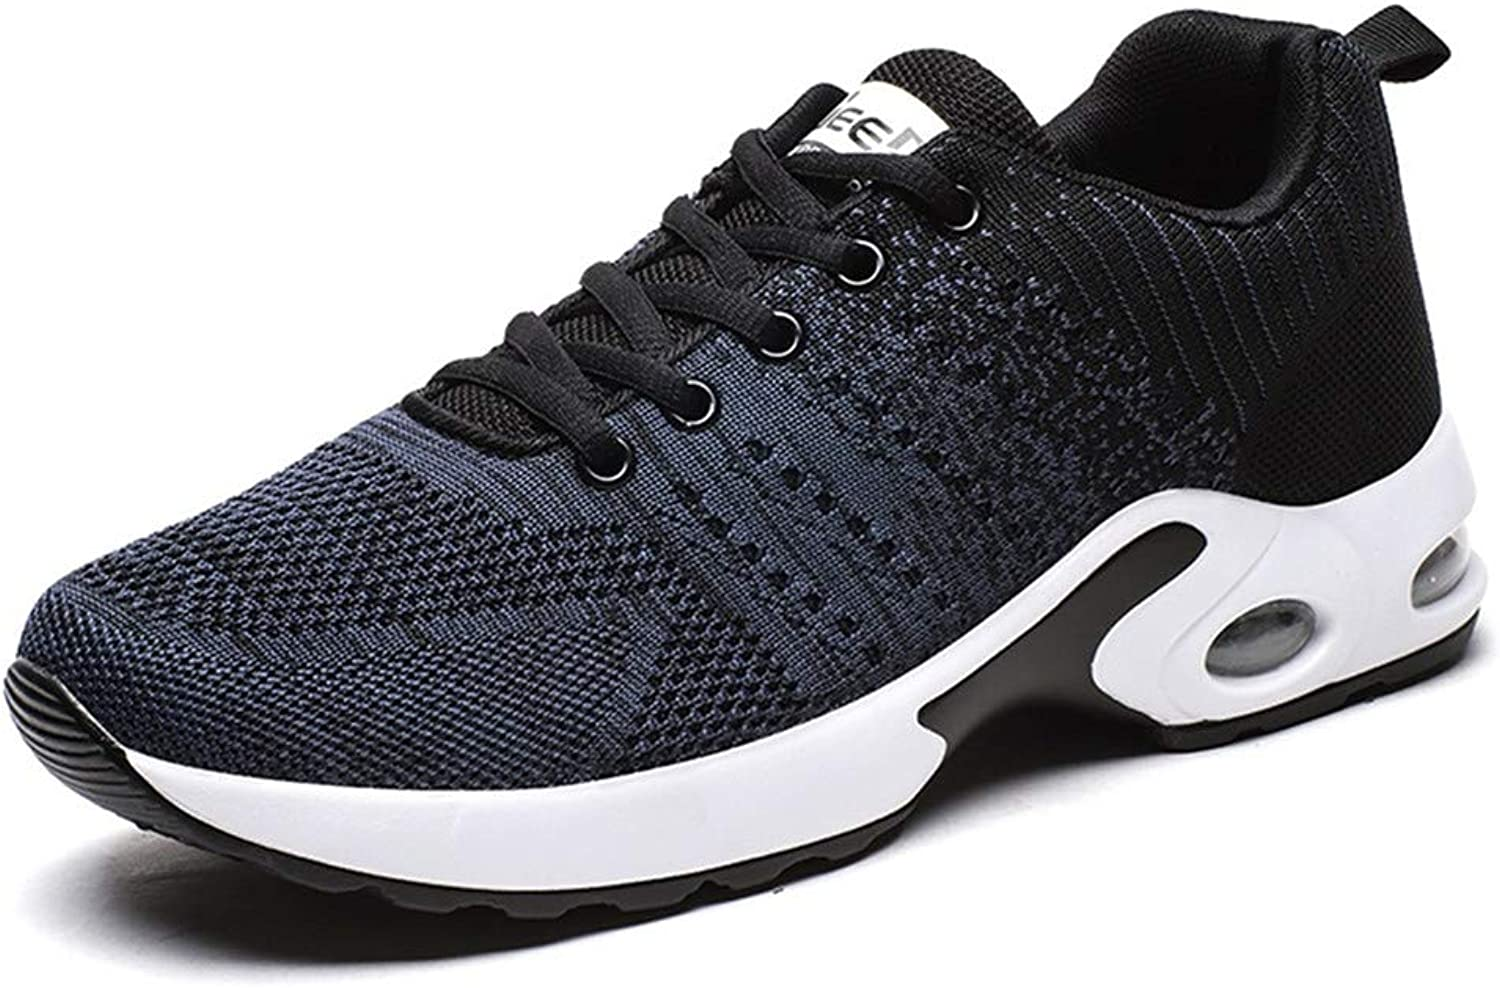 Lxmhz Mens Mesh Trainers Athletic Walking Gym shoes Sport Run Air Cushion Tennis shoes Lightweight Walking Sneakers Breathable